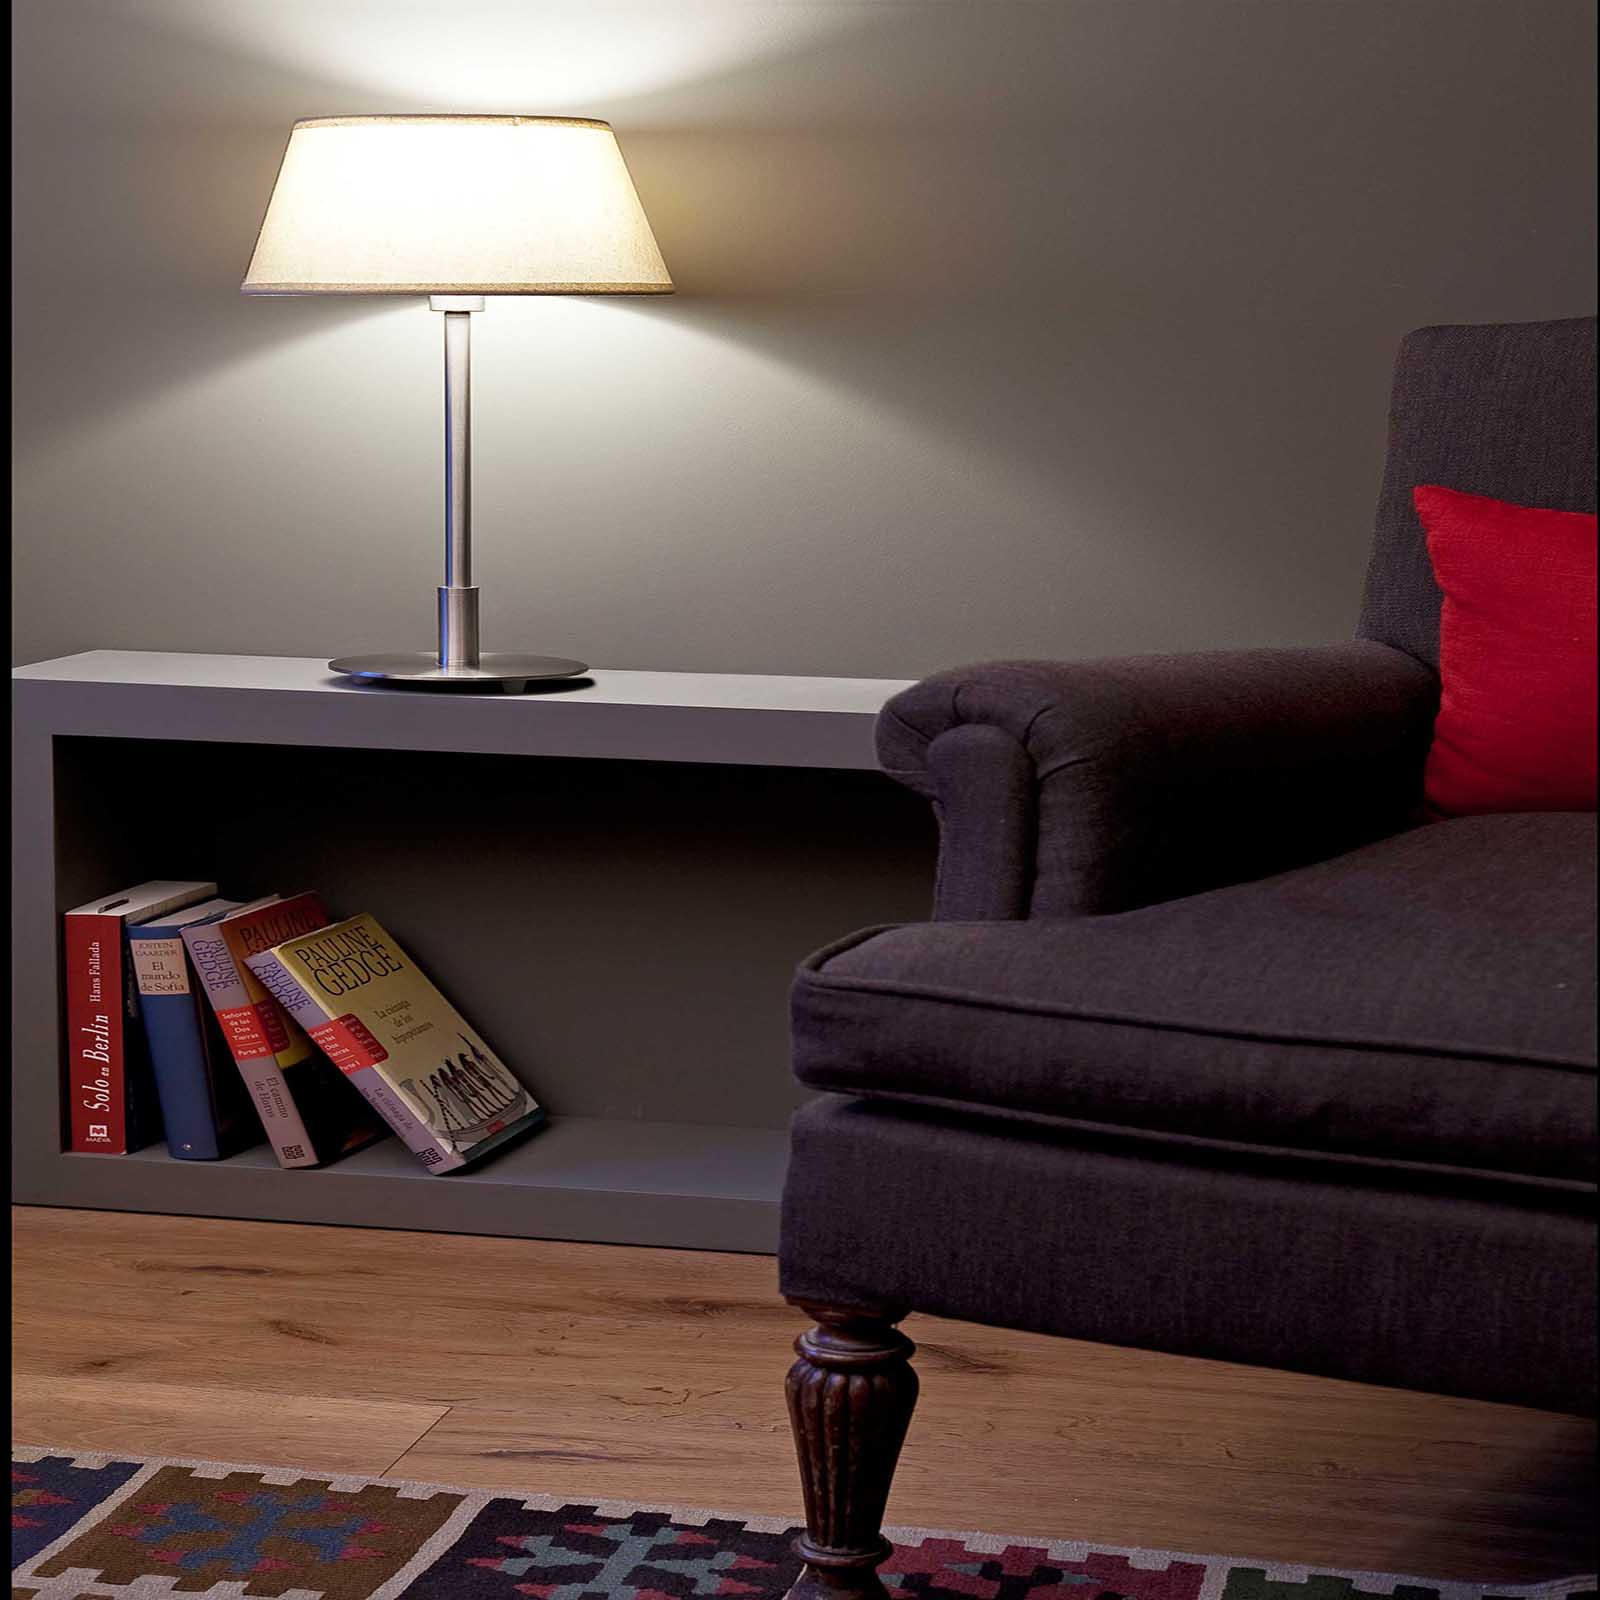 More information of MITIC table lamp - Faro